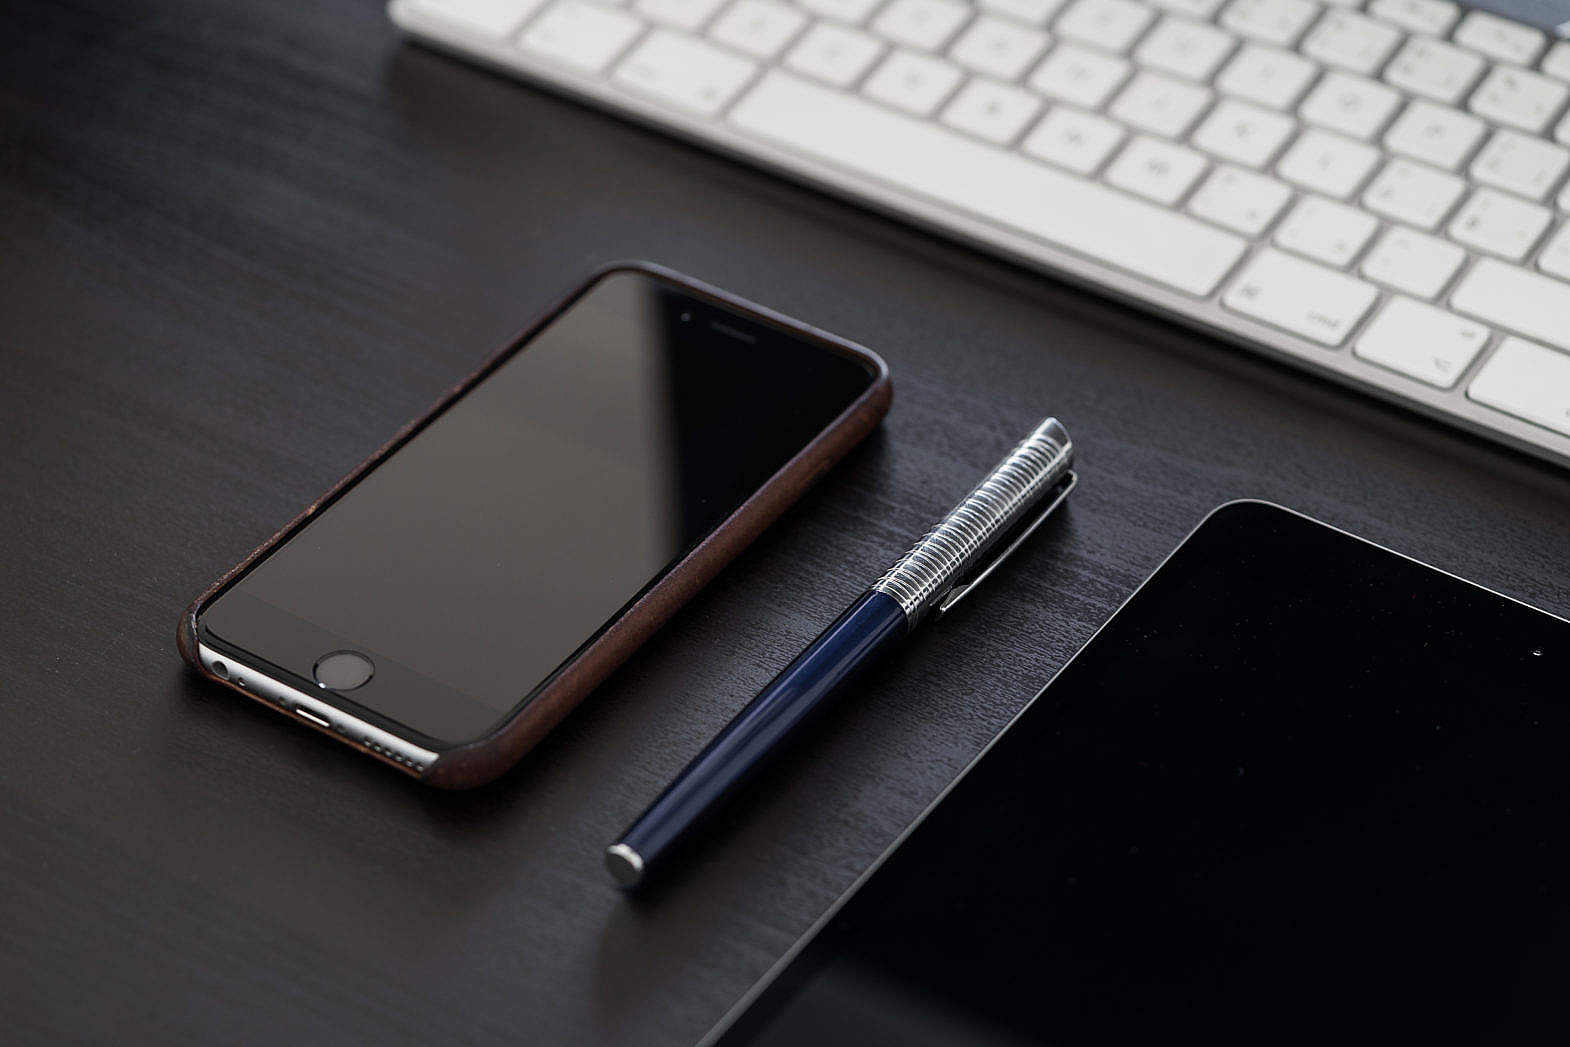 Black iPhone on Black Office Desk Free Stock Photo Download